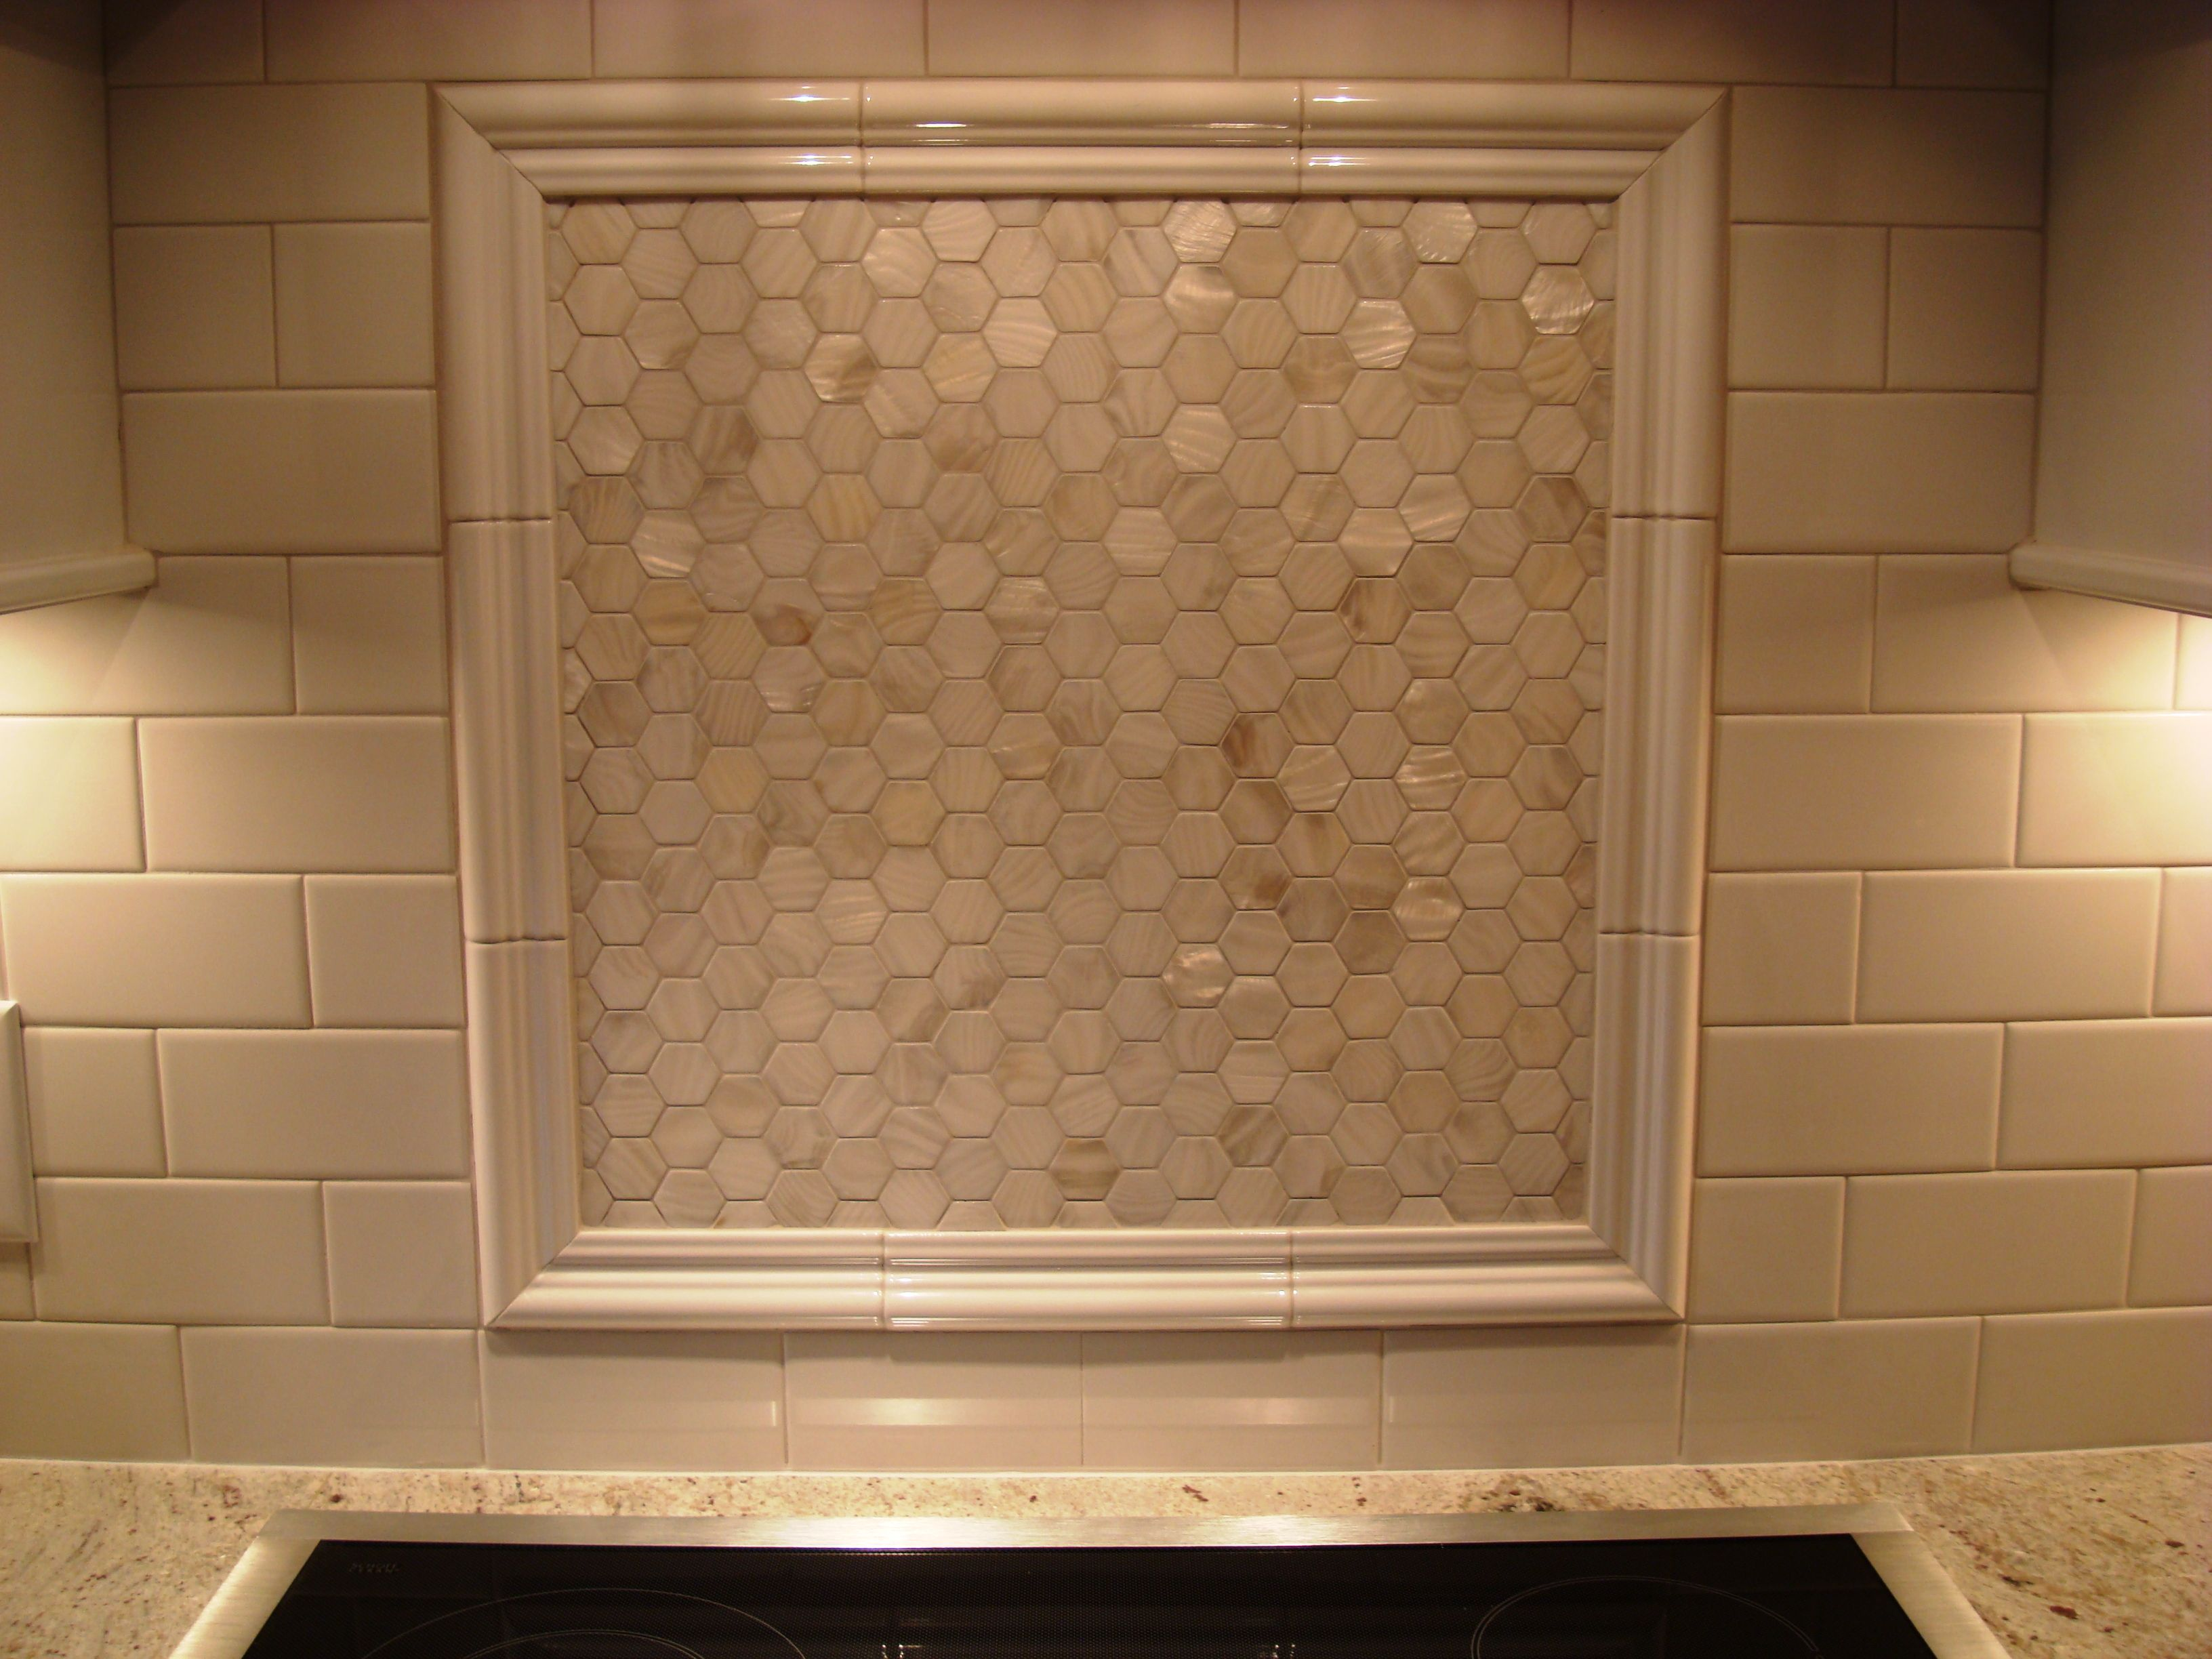 Over The Stove Backsplash The Mother Of Pearl Backsplash Above The Stove With White Ceramic